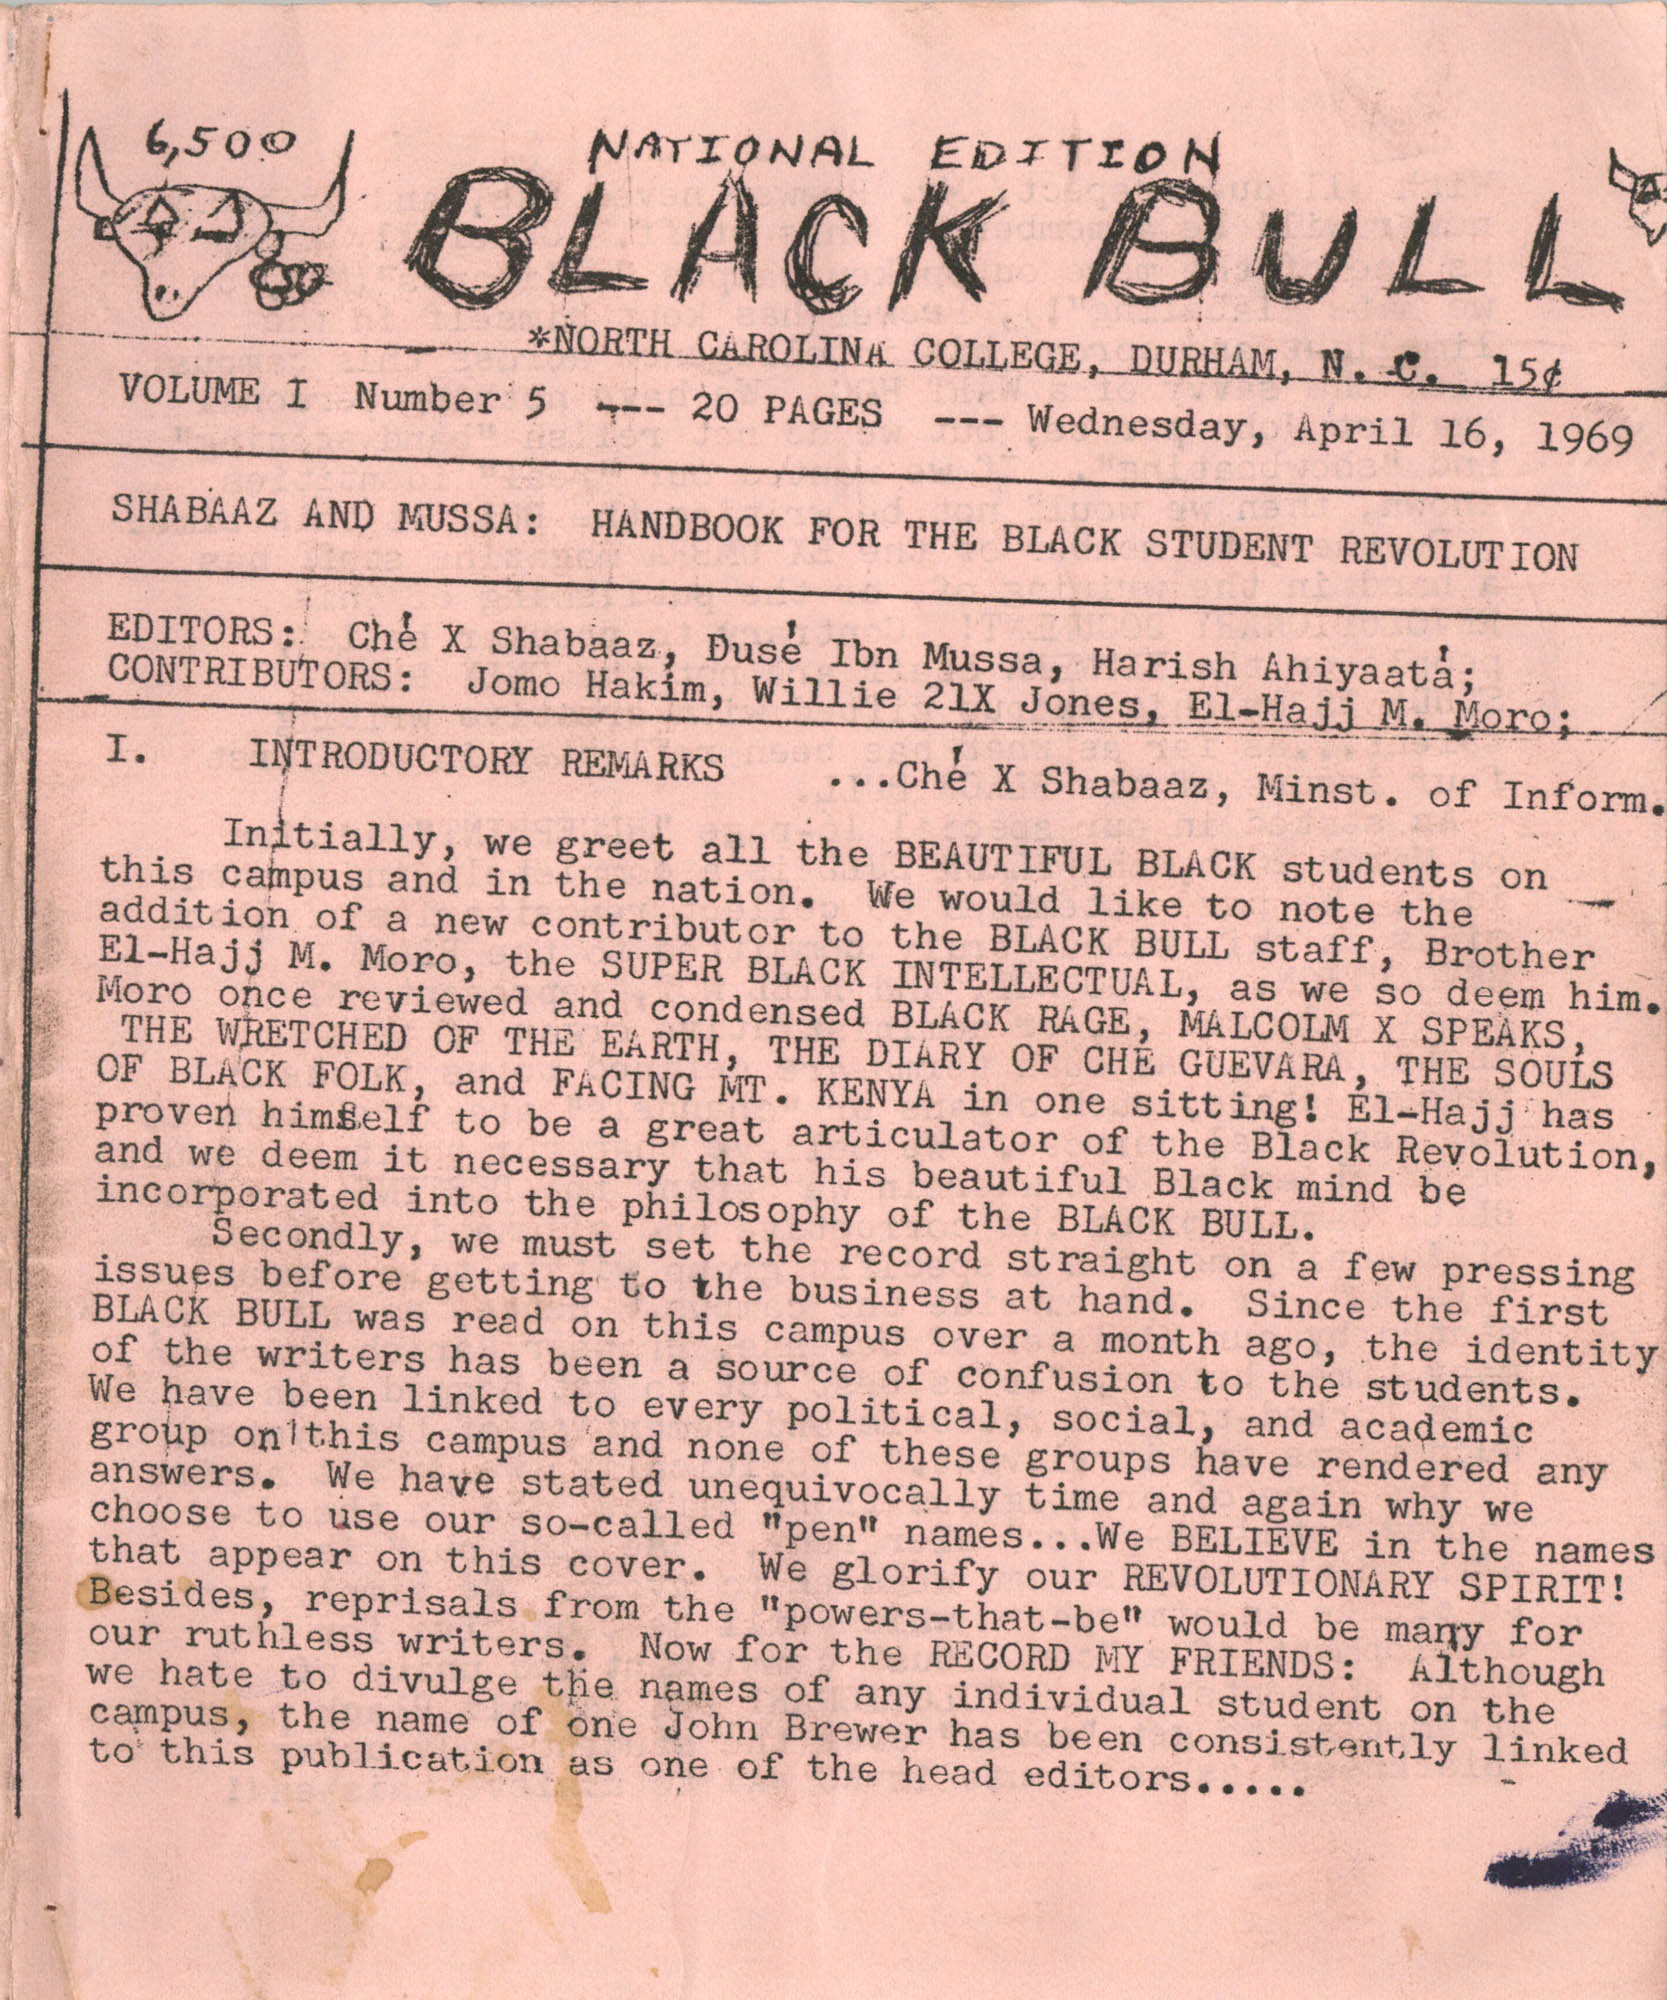 National Edition Black Bull, Volume I, Number 5